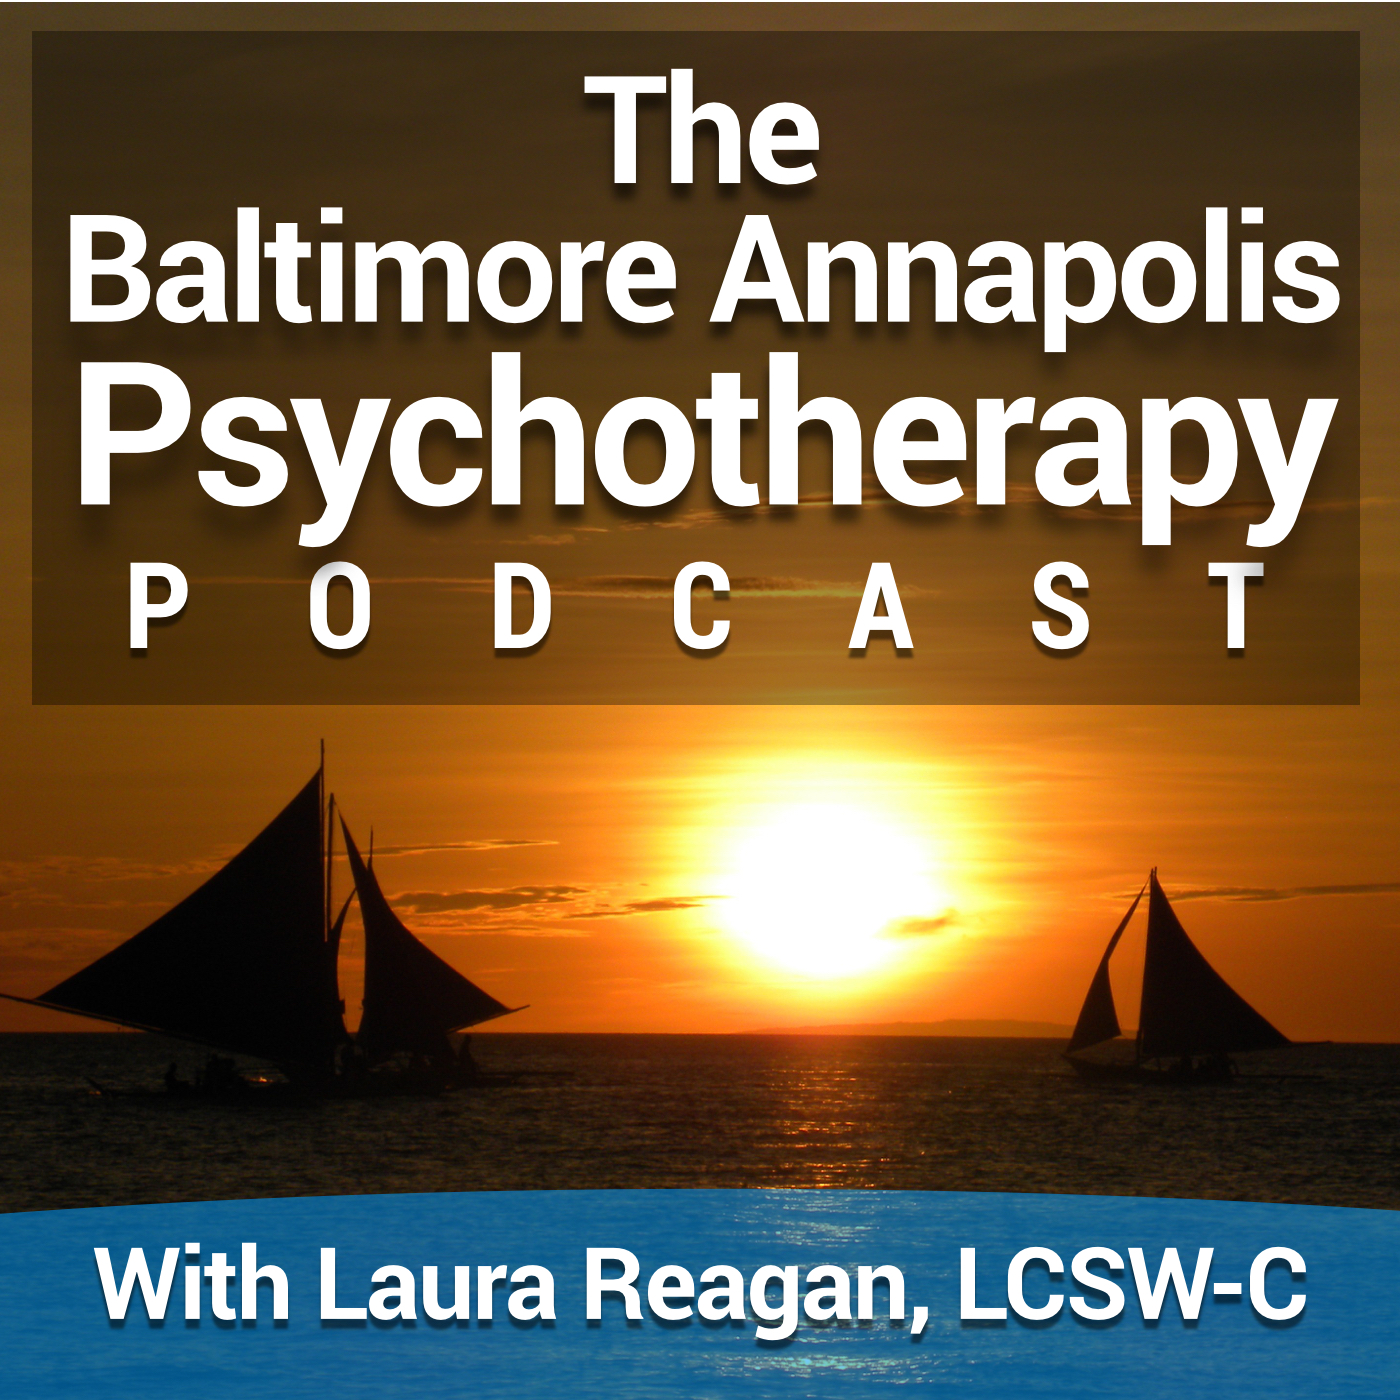 Baltimore Annapolis podcast listen here